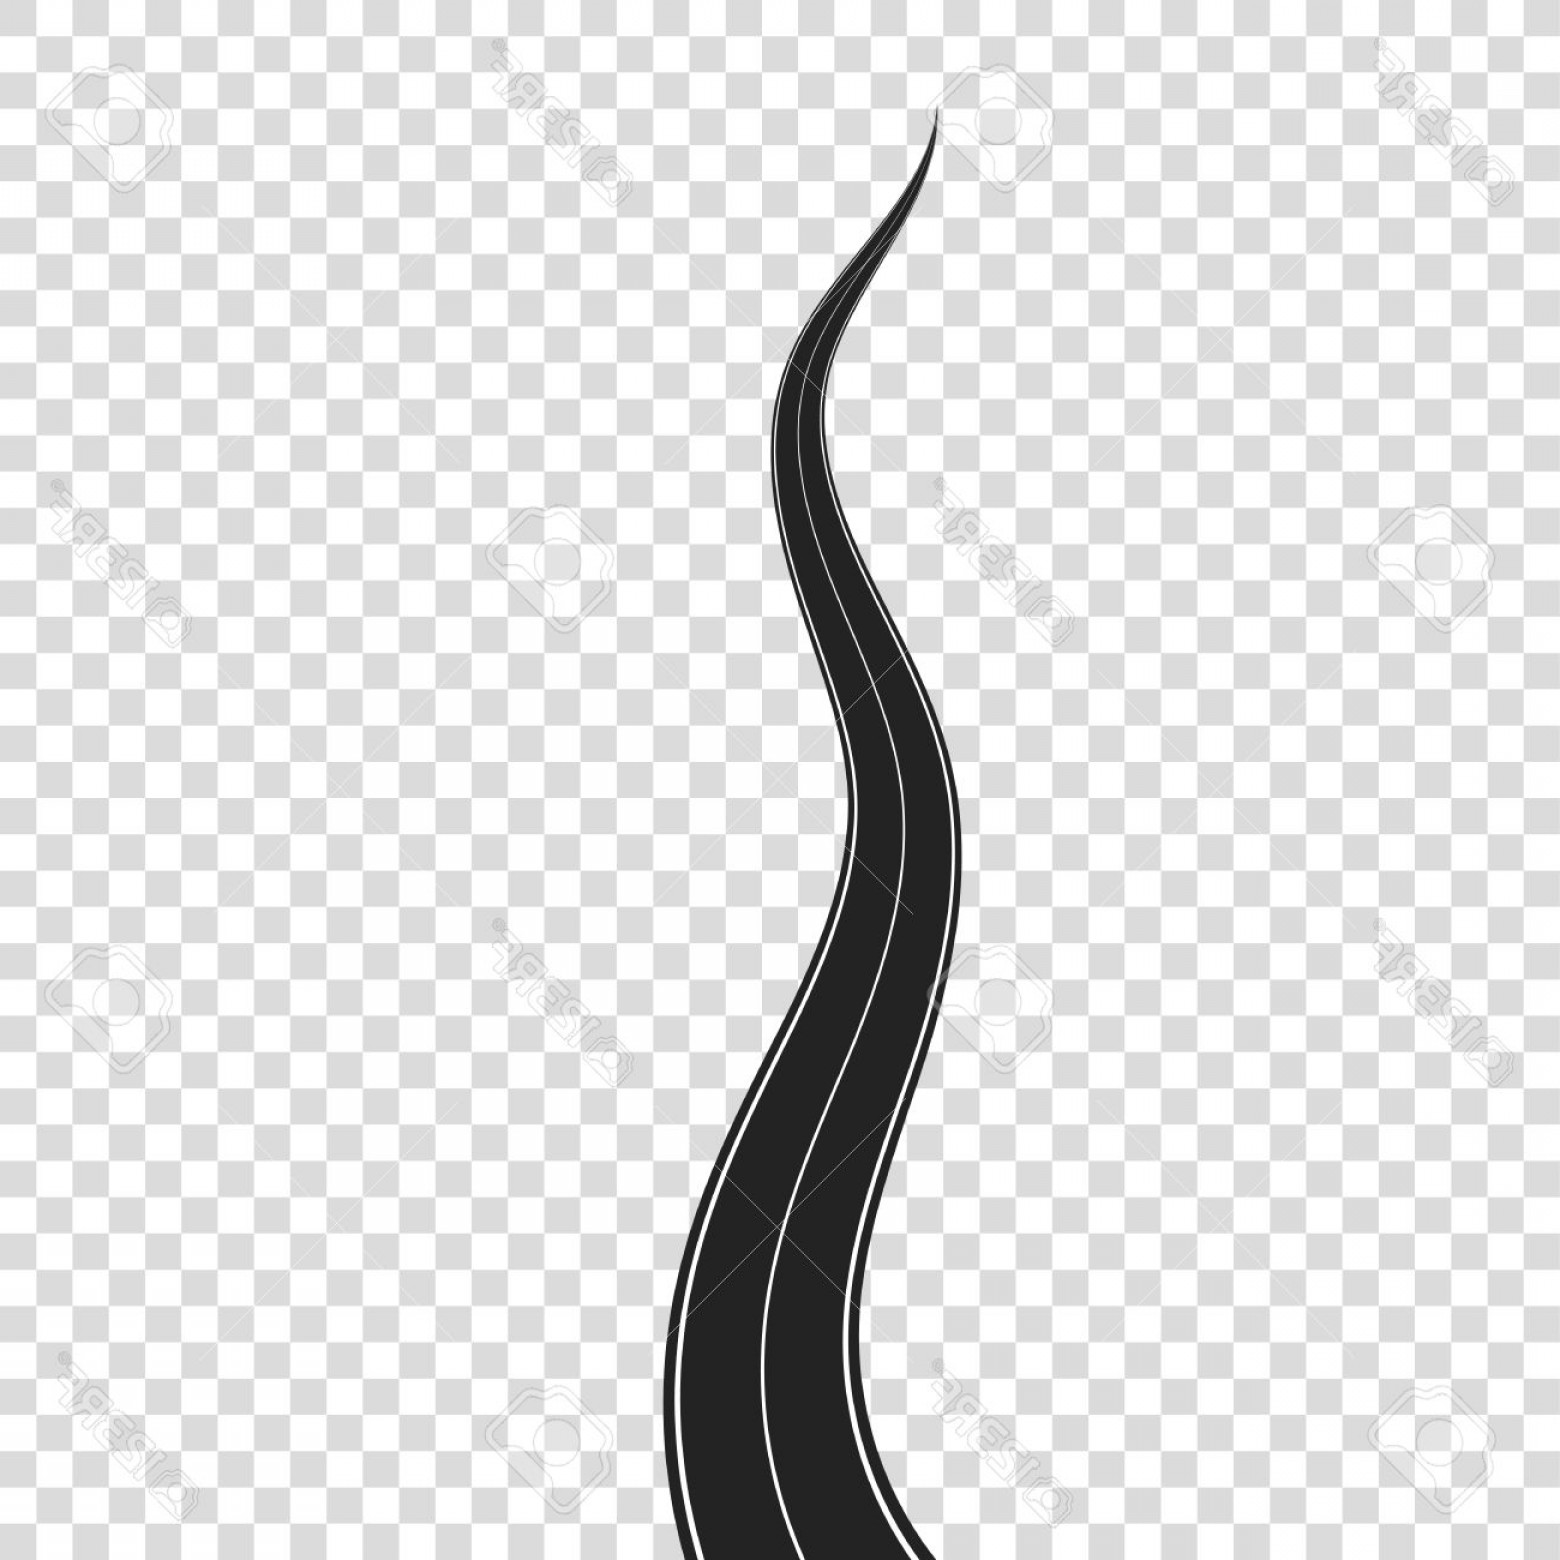 Transparent Curved Road Vector: Photostock Vector Curved Road On Transparent Background Highway With White Road Marking